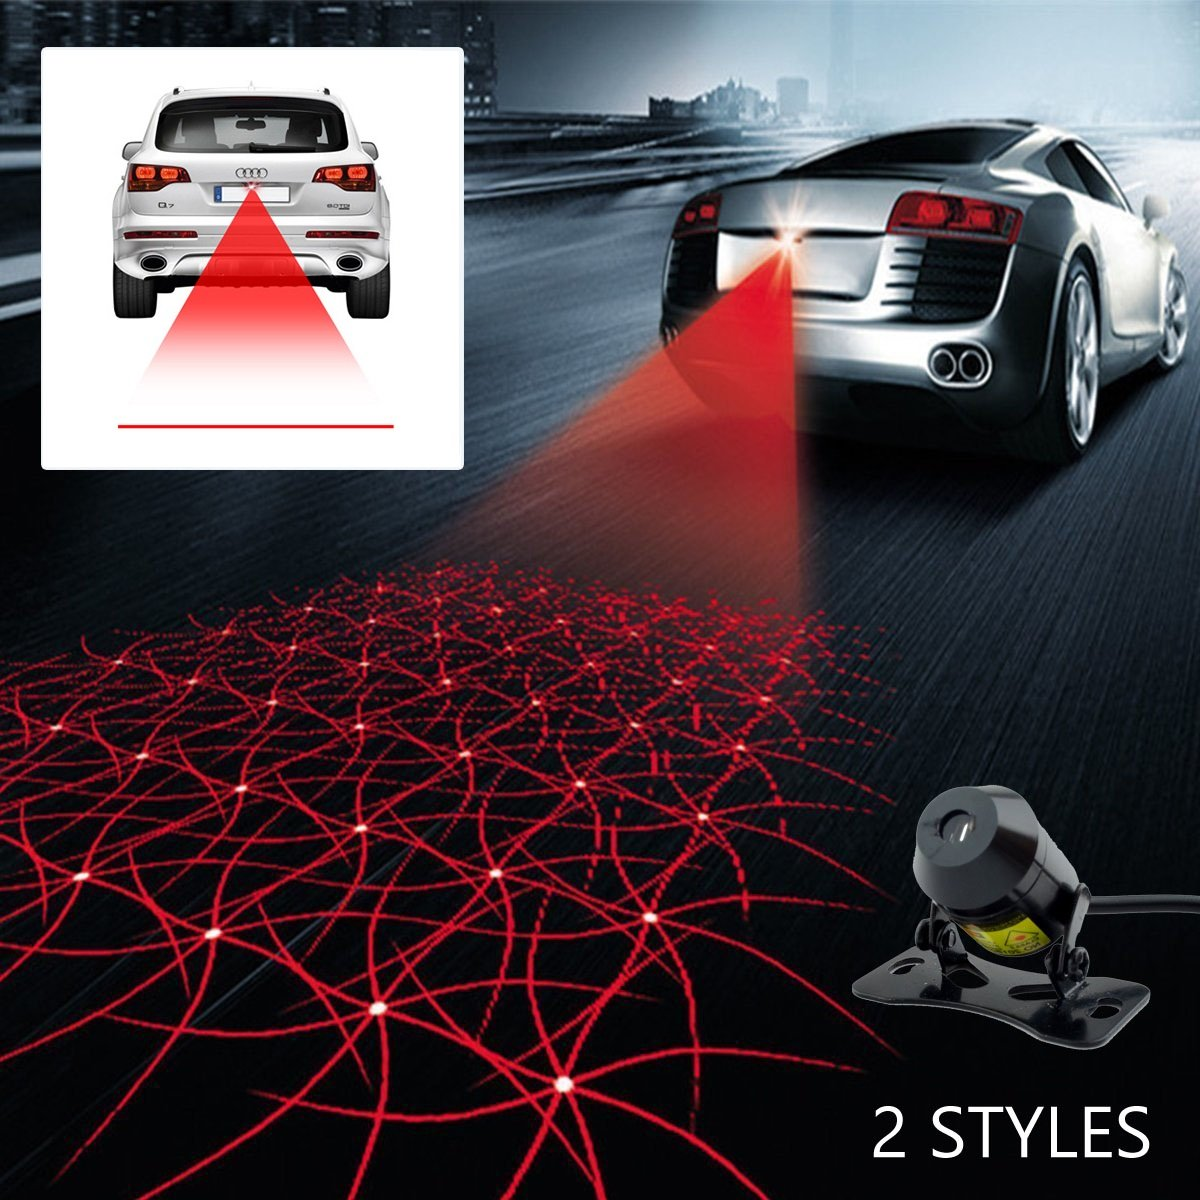 Laser Lights For Cars Universal Auto Rear End Alarm Car Headlight Fog Lamp And Motorcycles Brake Parking Anti Collision Safety Warning